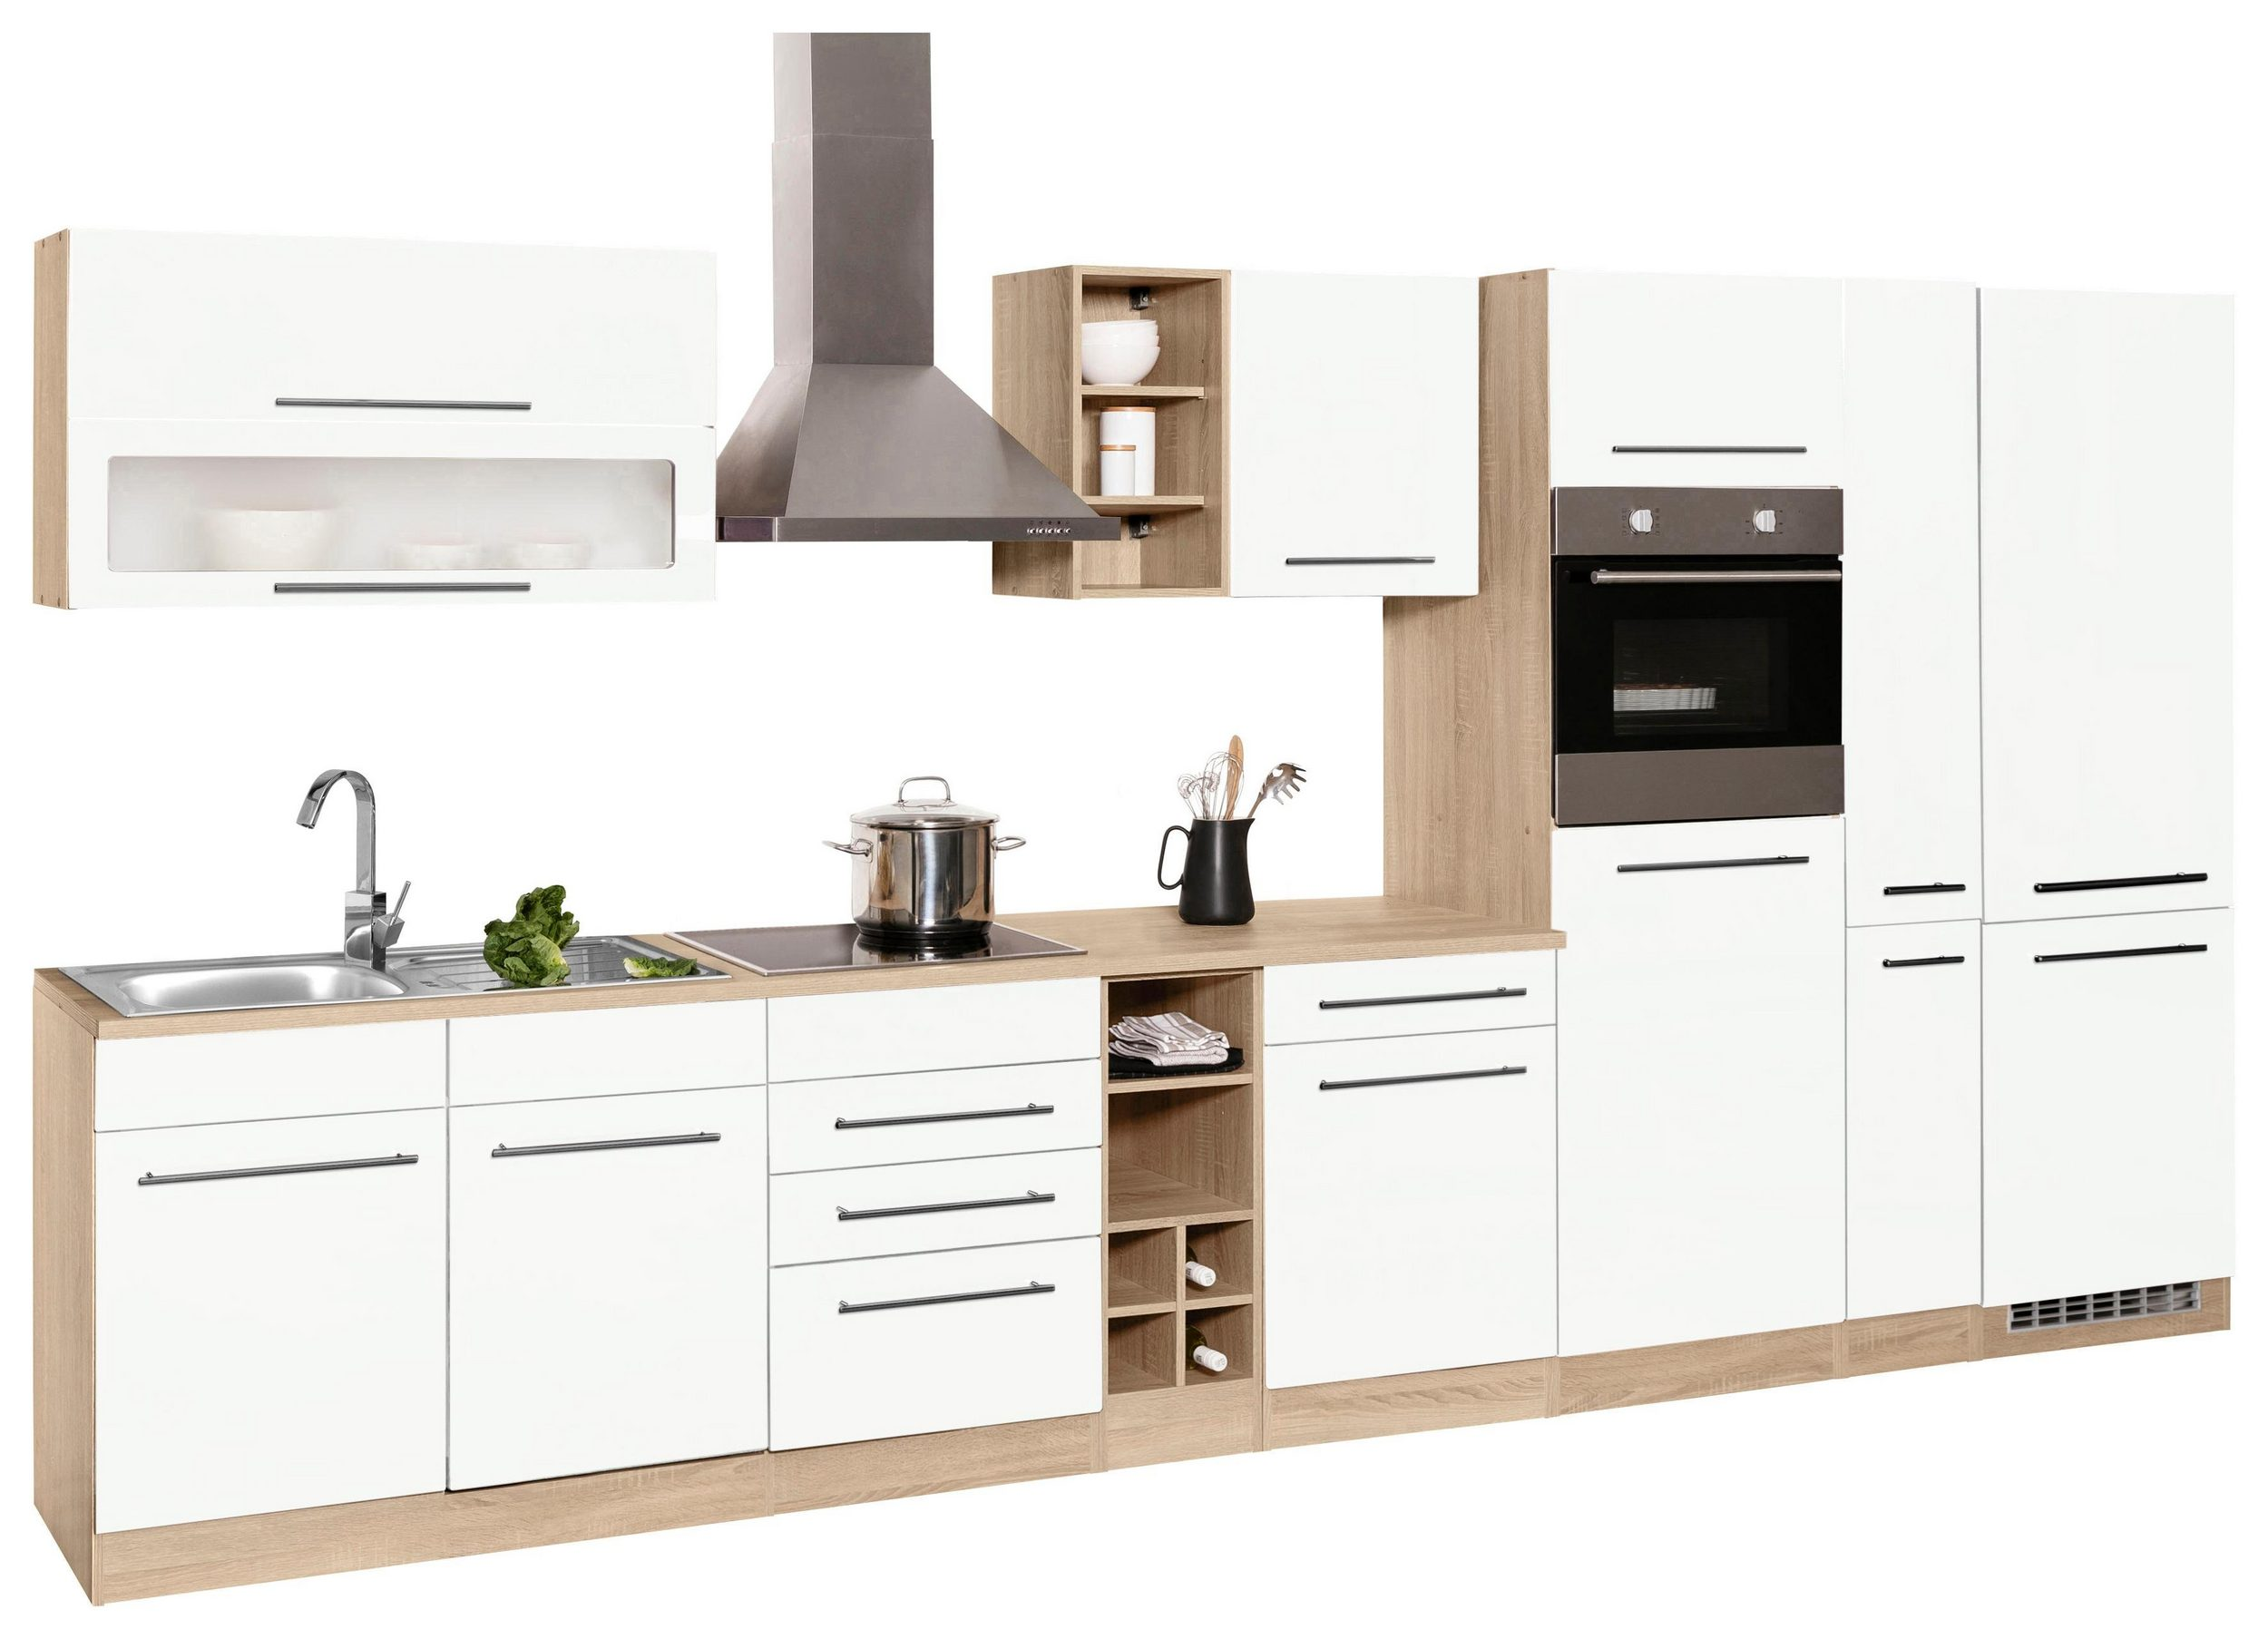 3599116625 Kallax Kitchen Cabinets HELD khmer in phnom penh cambodia